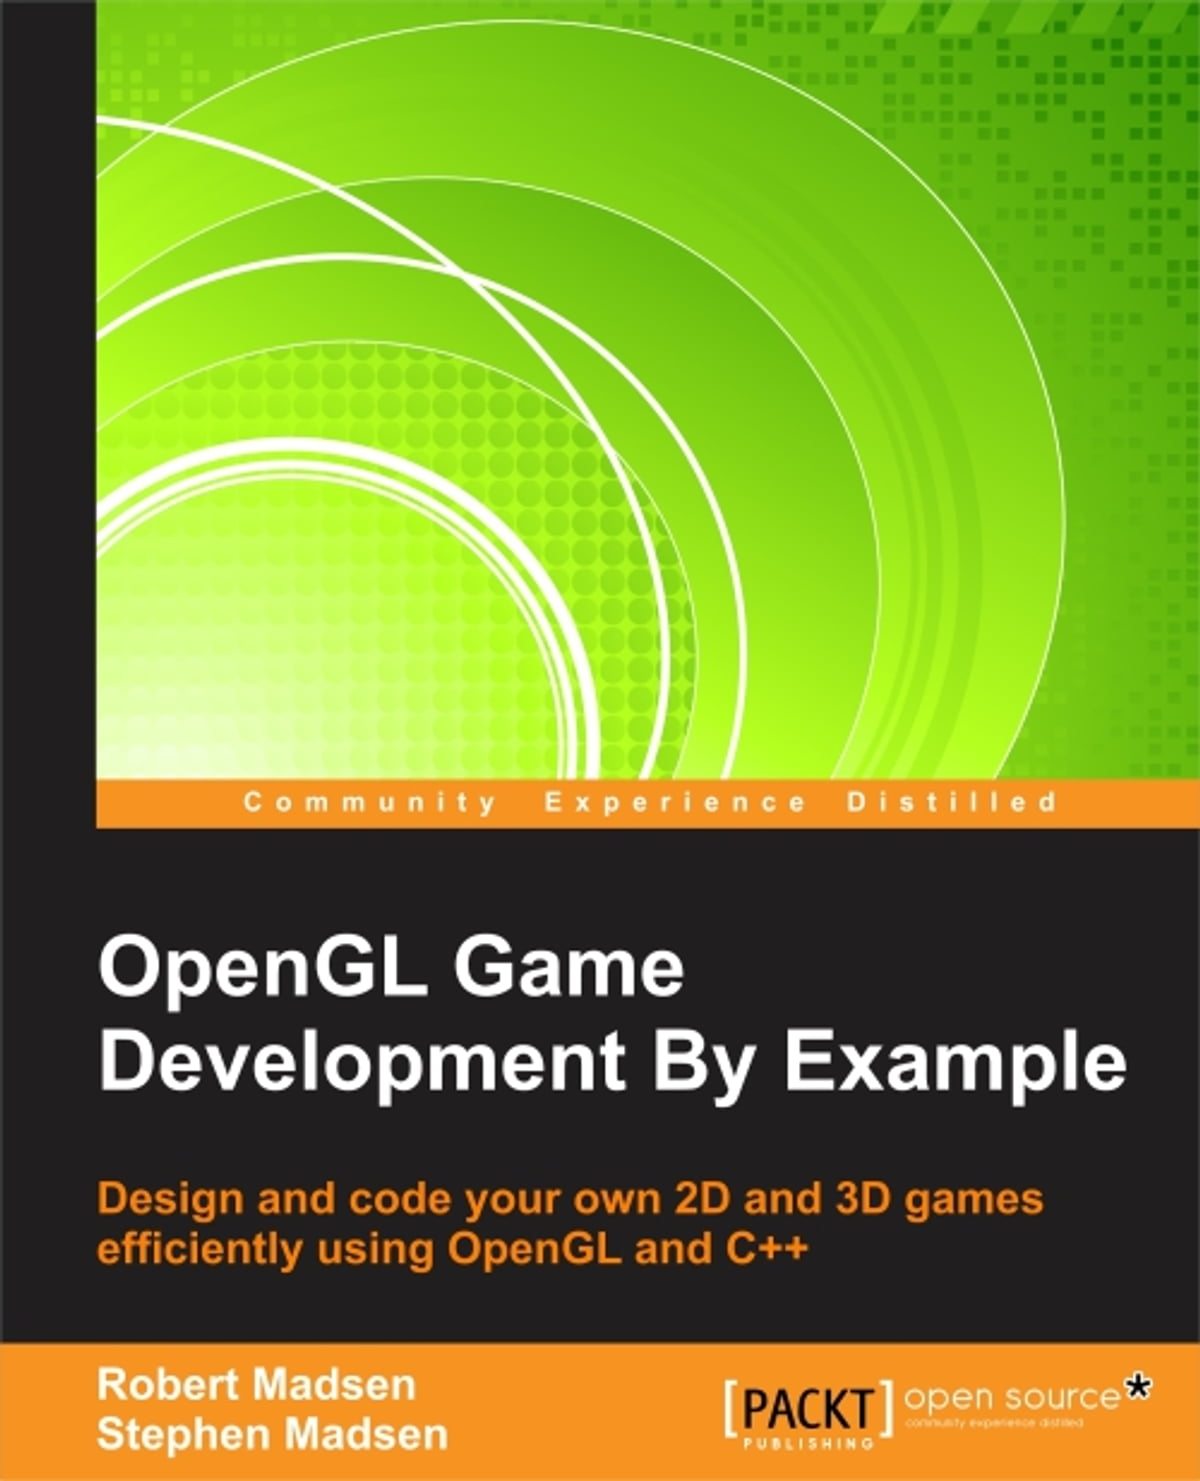 OpenGL Game Development By Example eBook by Robert Madsen - 9781783288205 |  Rakuten Kobo